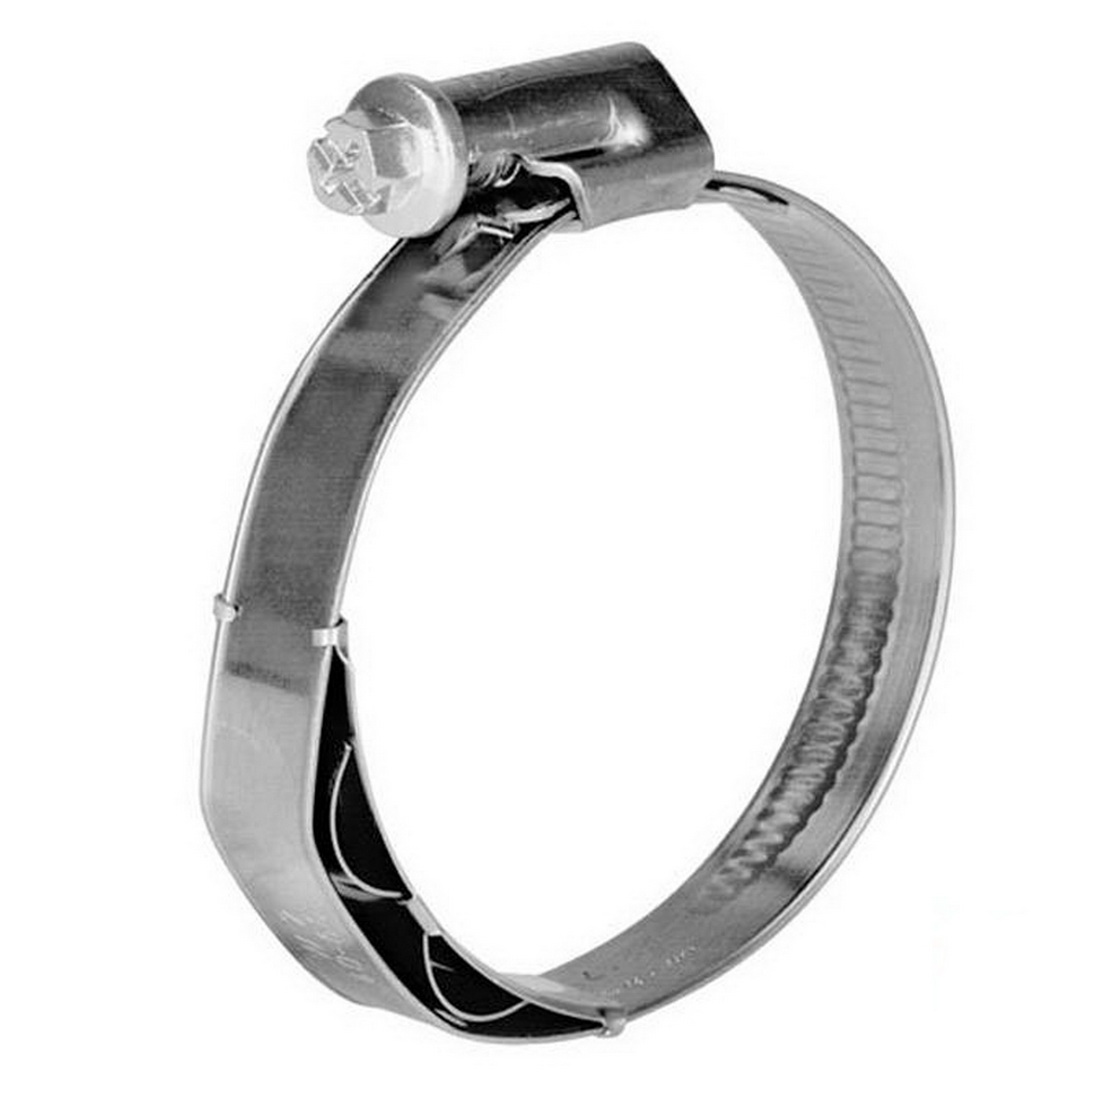 TORRO Worm Drive Hose Clamp 335-50mm 12mm Band W3 430 Stainless Steel P1 WDHC355012W3